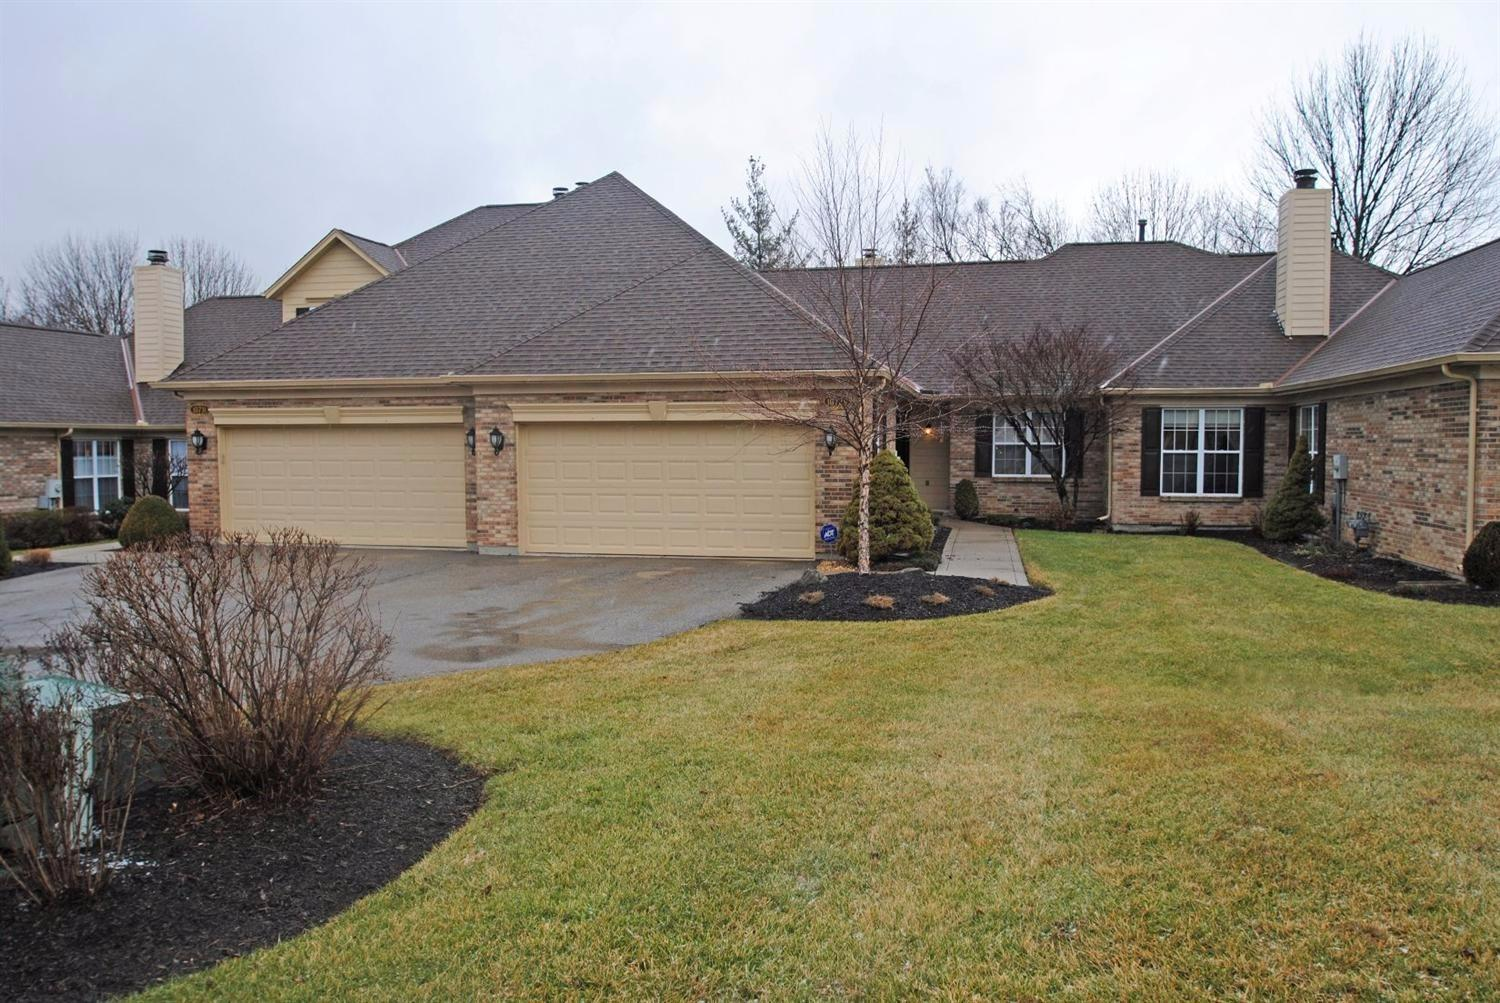 10729 Crown Pointe Dr, Union, KY 41091